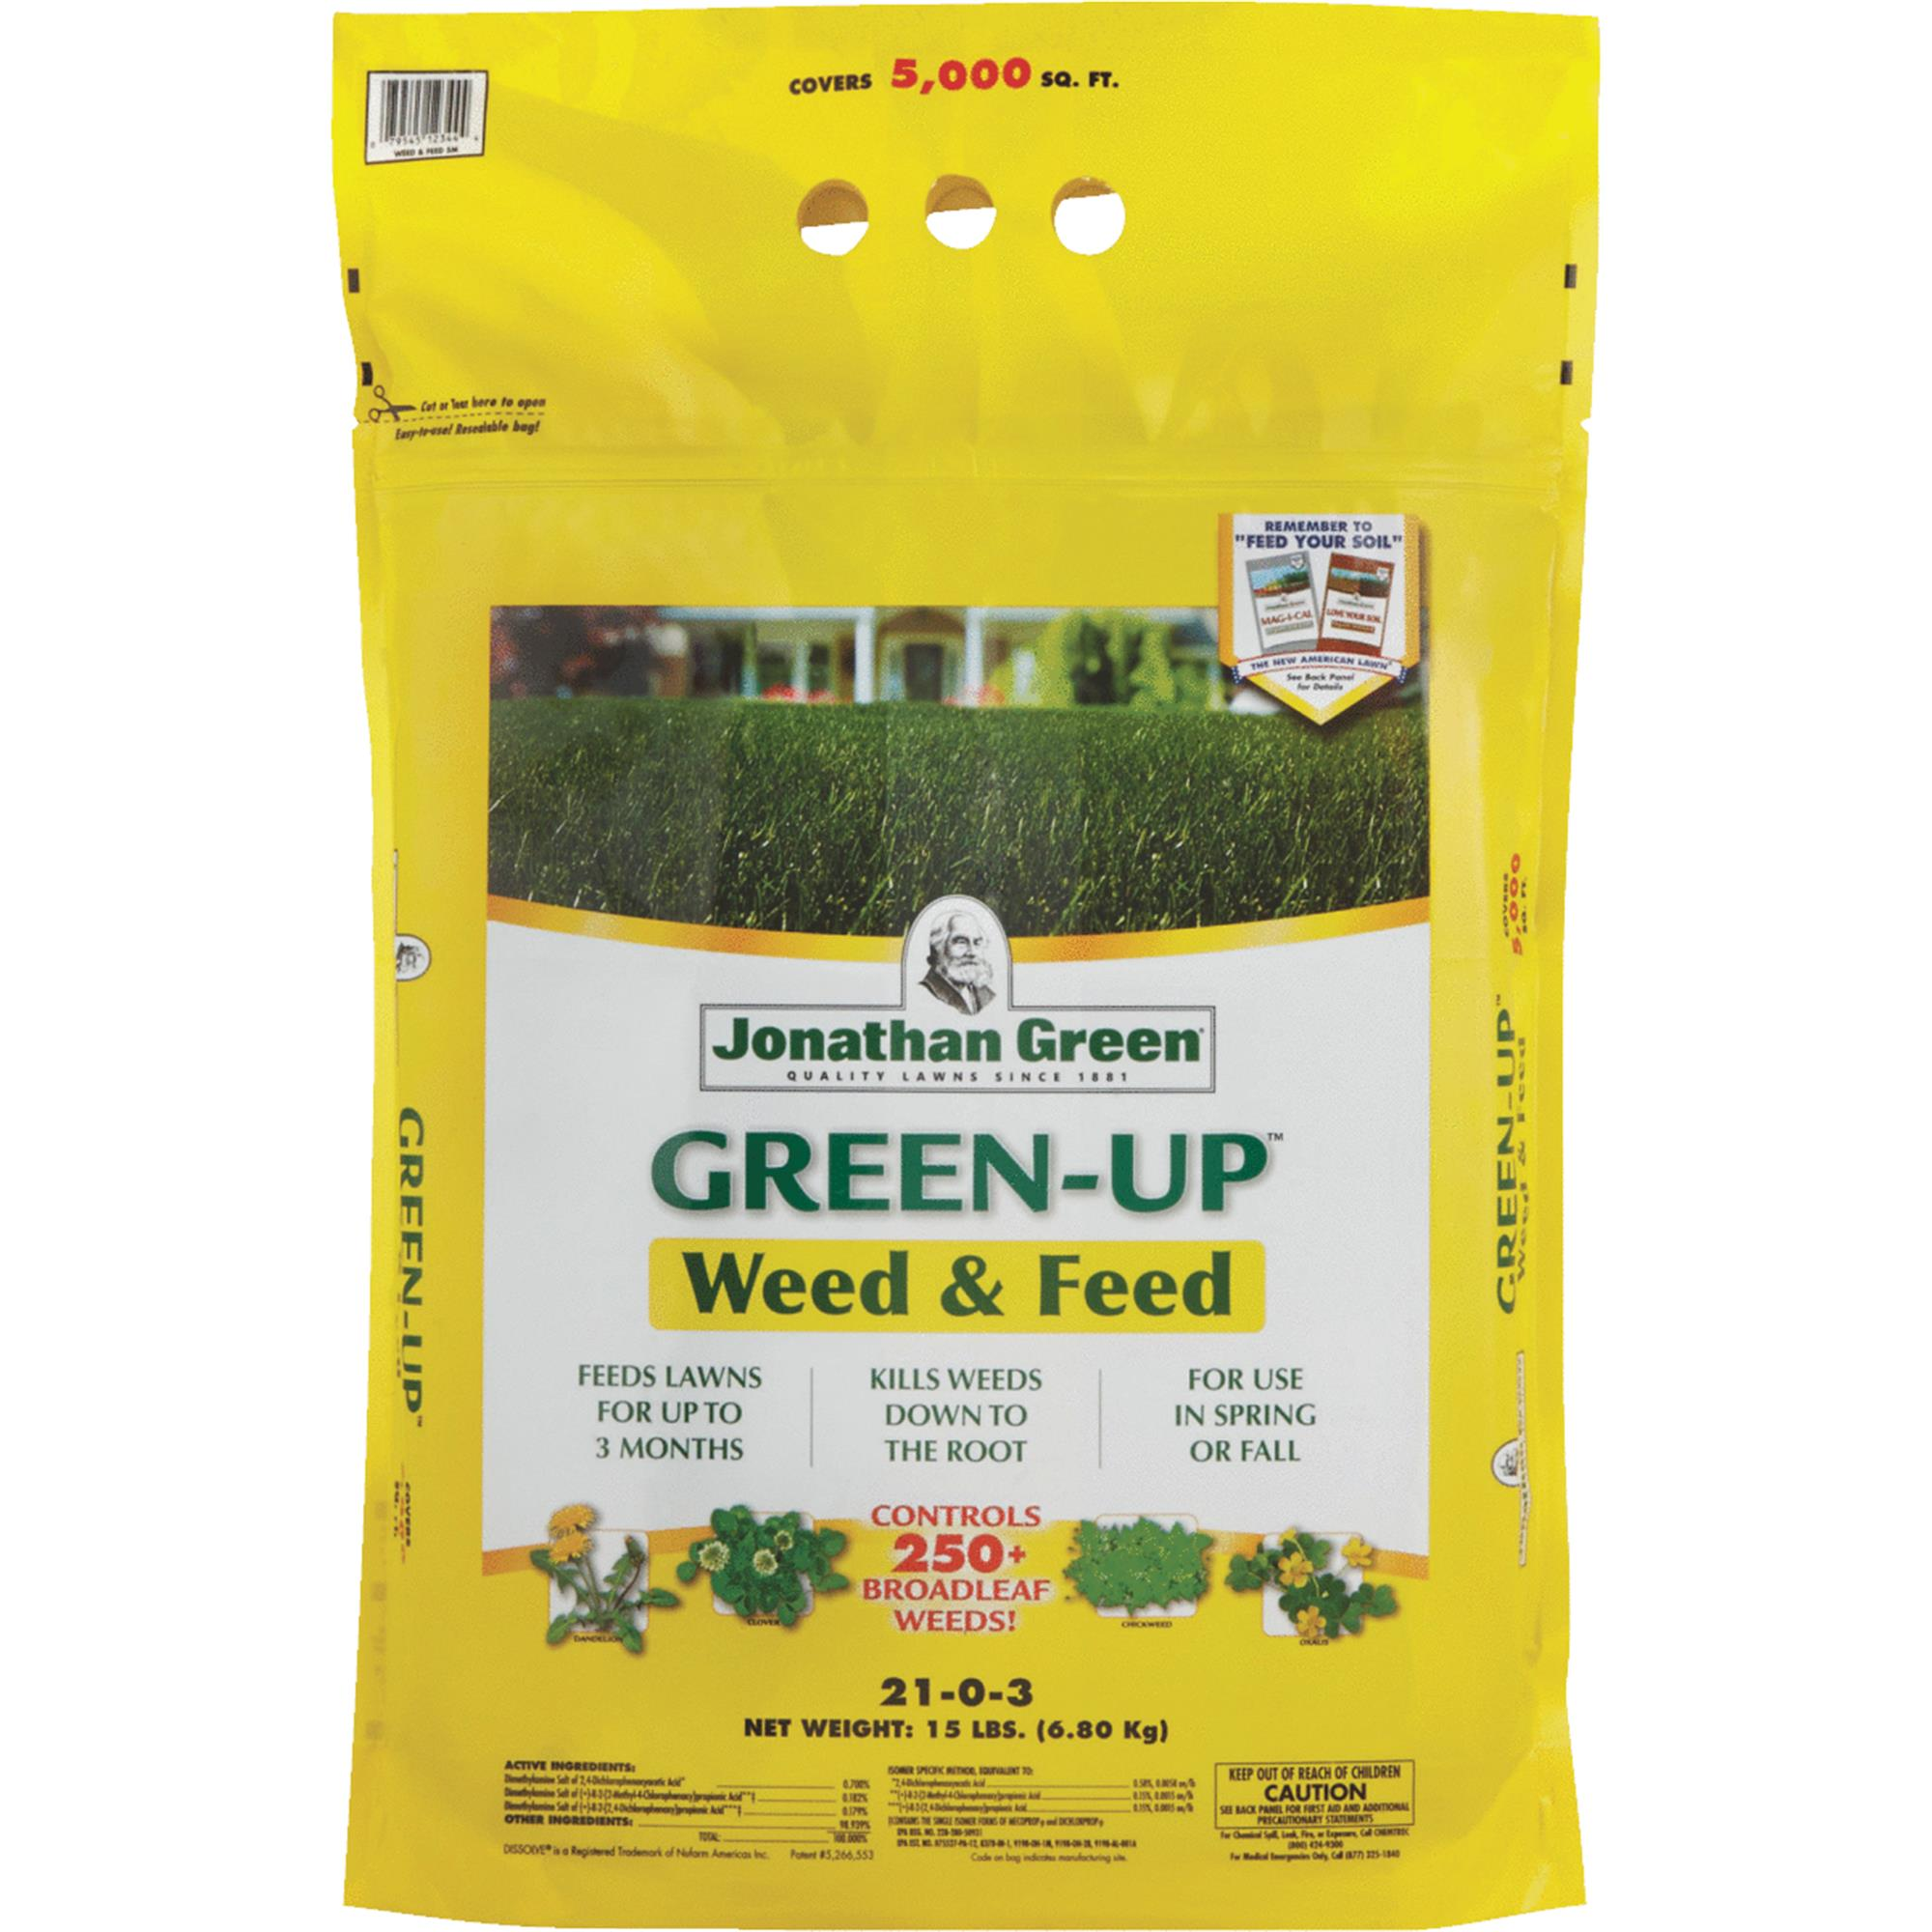 Jonathan Green Green-Up Weed & Feed Lawn Fertilizer With Weed Killer